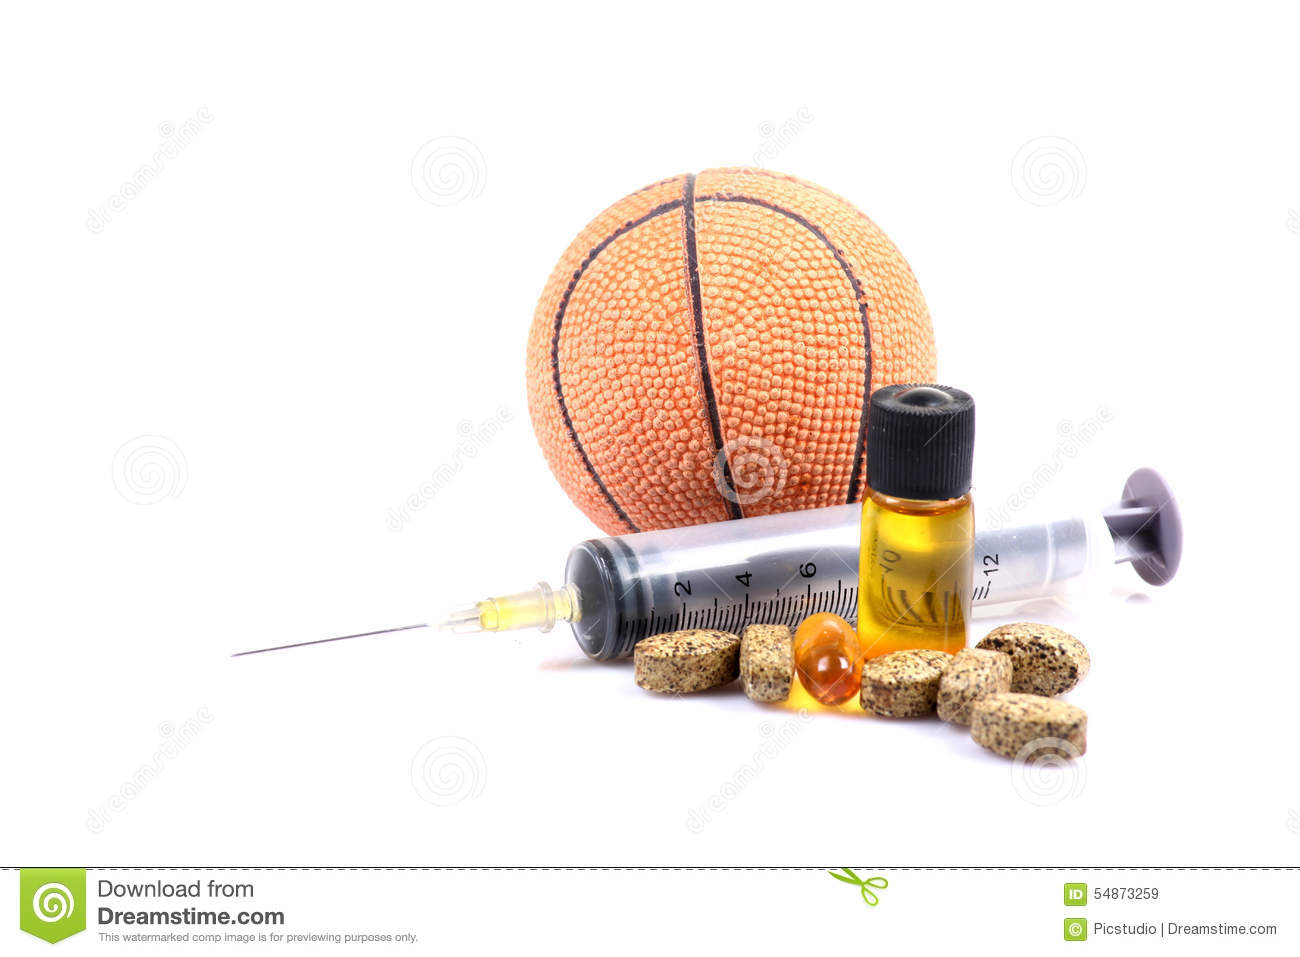 the use of drugs in sports The side effects of performance-enhancing drugs can be dangerous and negative for athletes why no athlete should ever have to consider ped use to succeed in sport.